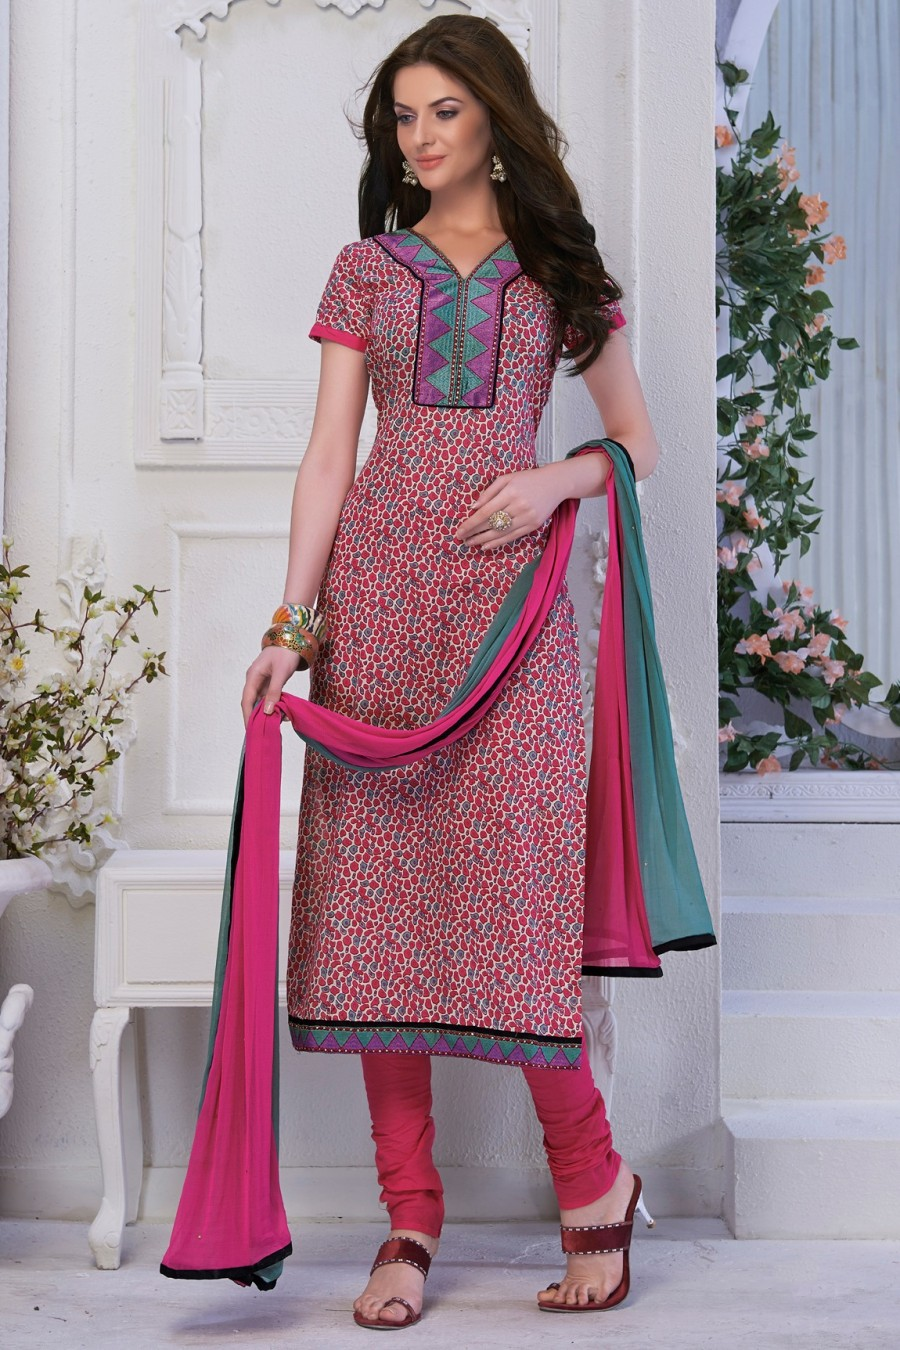 Buy PINK COTTON PRINTED SALWAR KAMEEZ WITH DUPATTA  Online